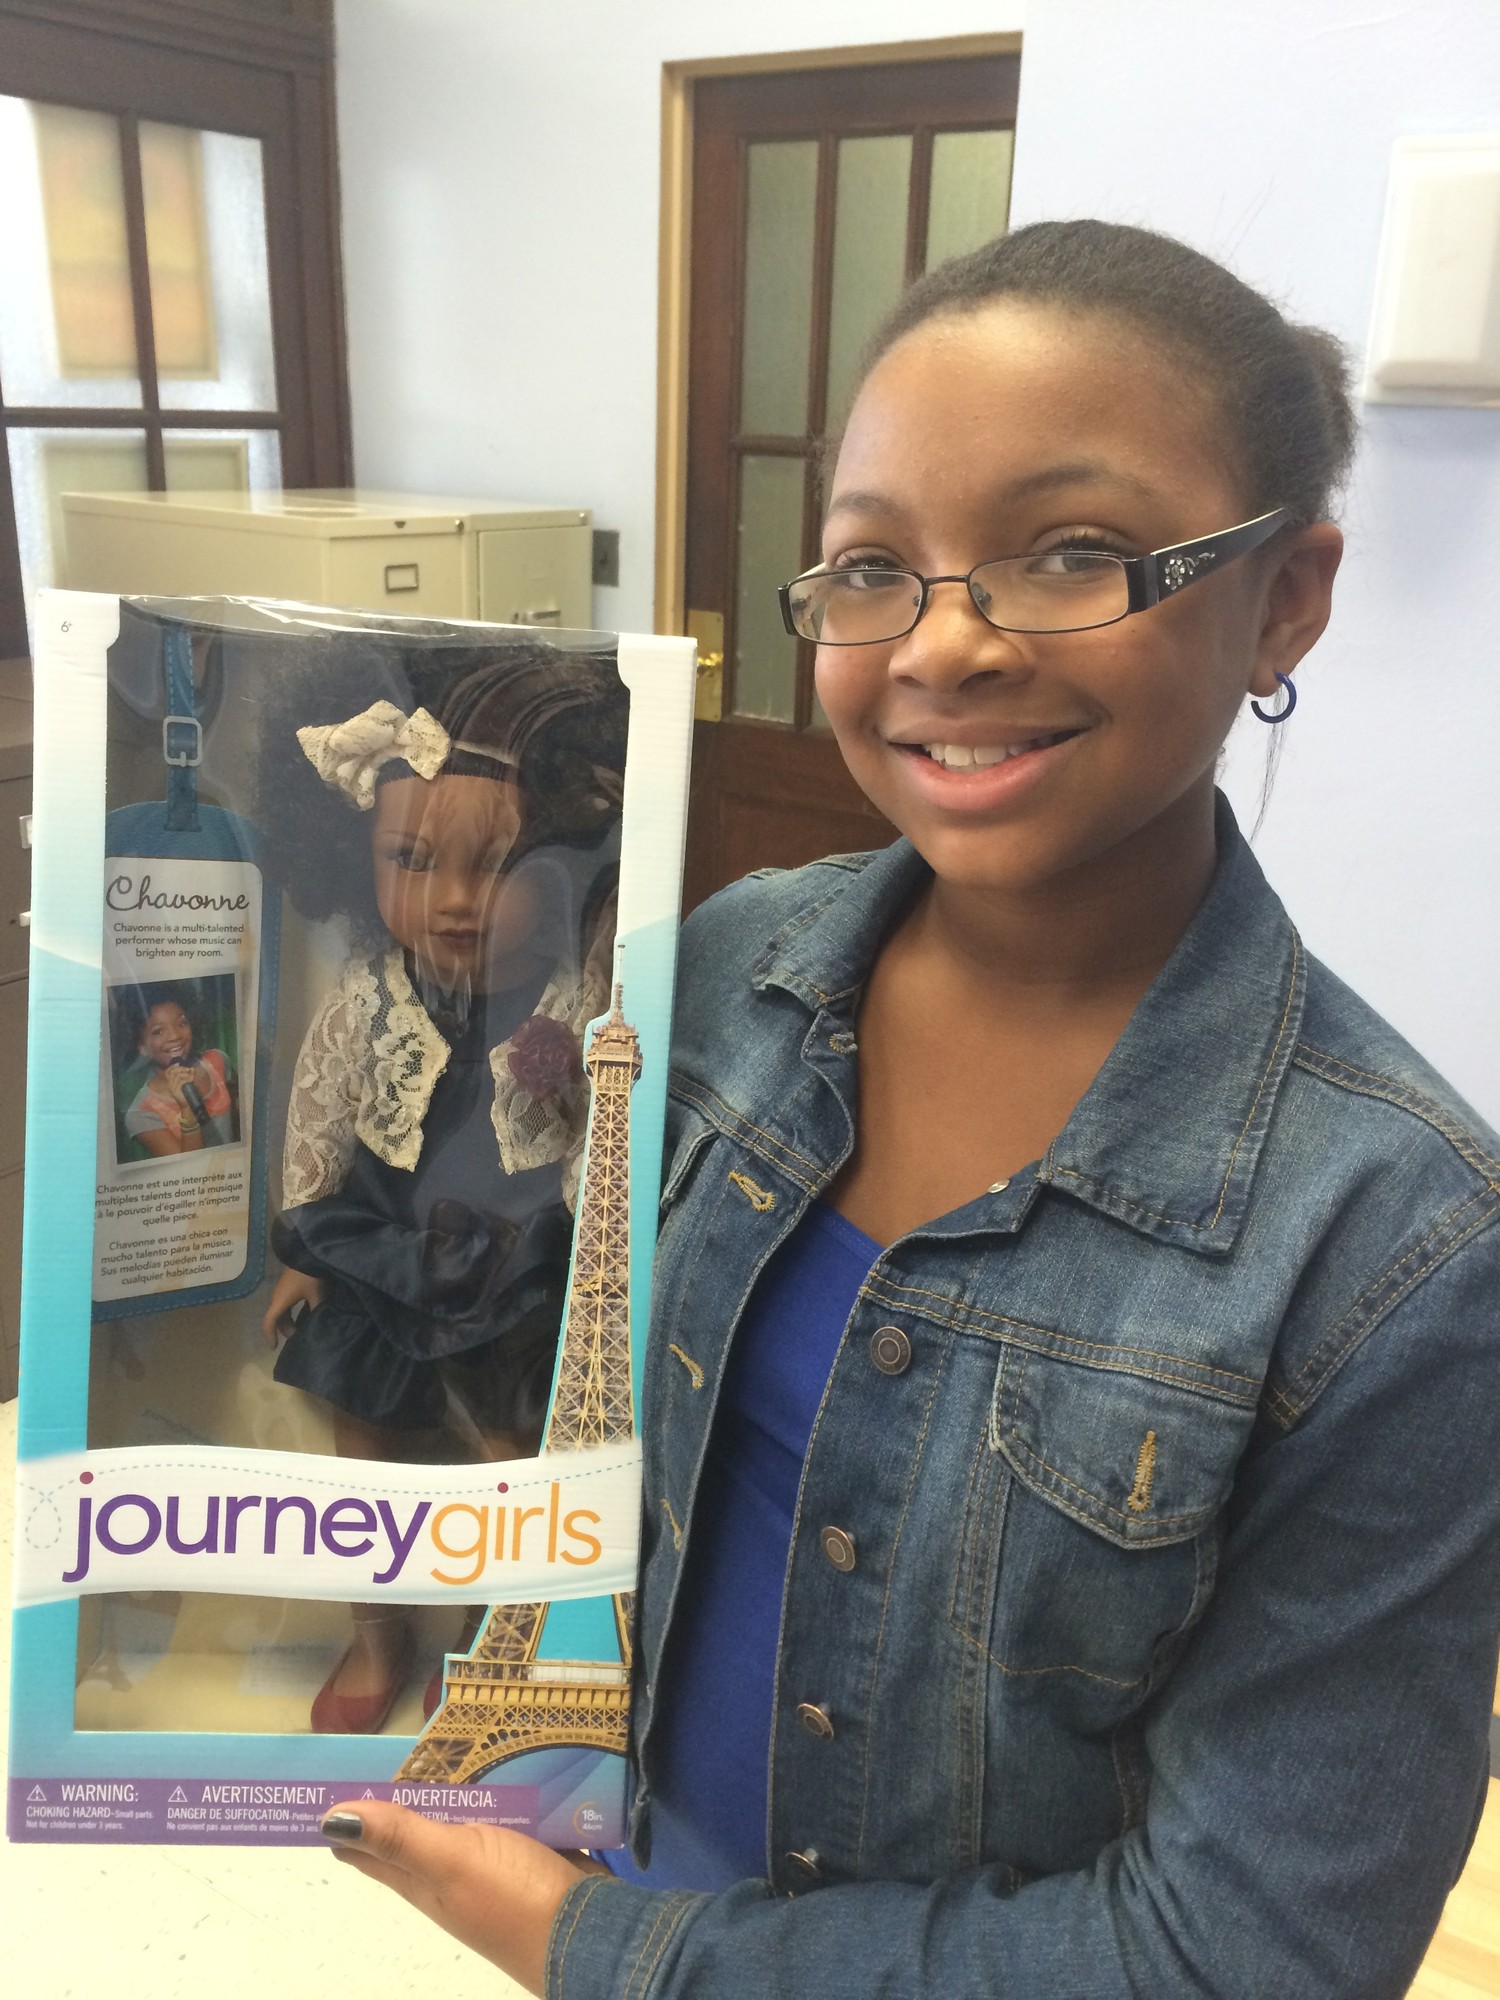 Ayannah Ruffin was selected late last year to become the face of Chavonne, one of six Journey Girls dolls that hit the shelves in December.